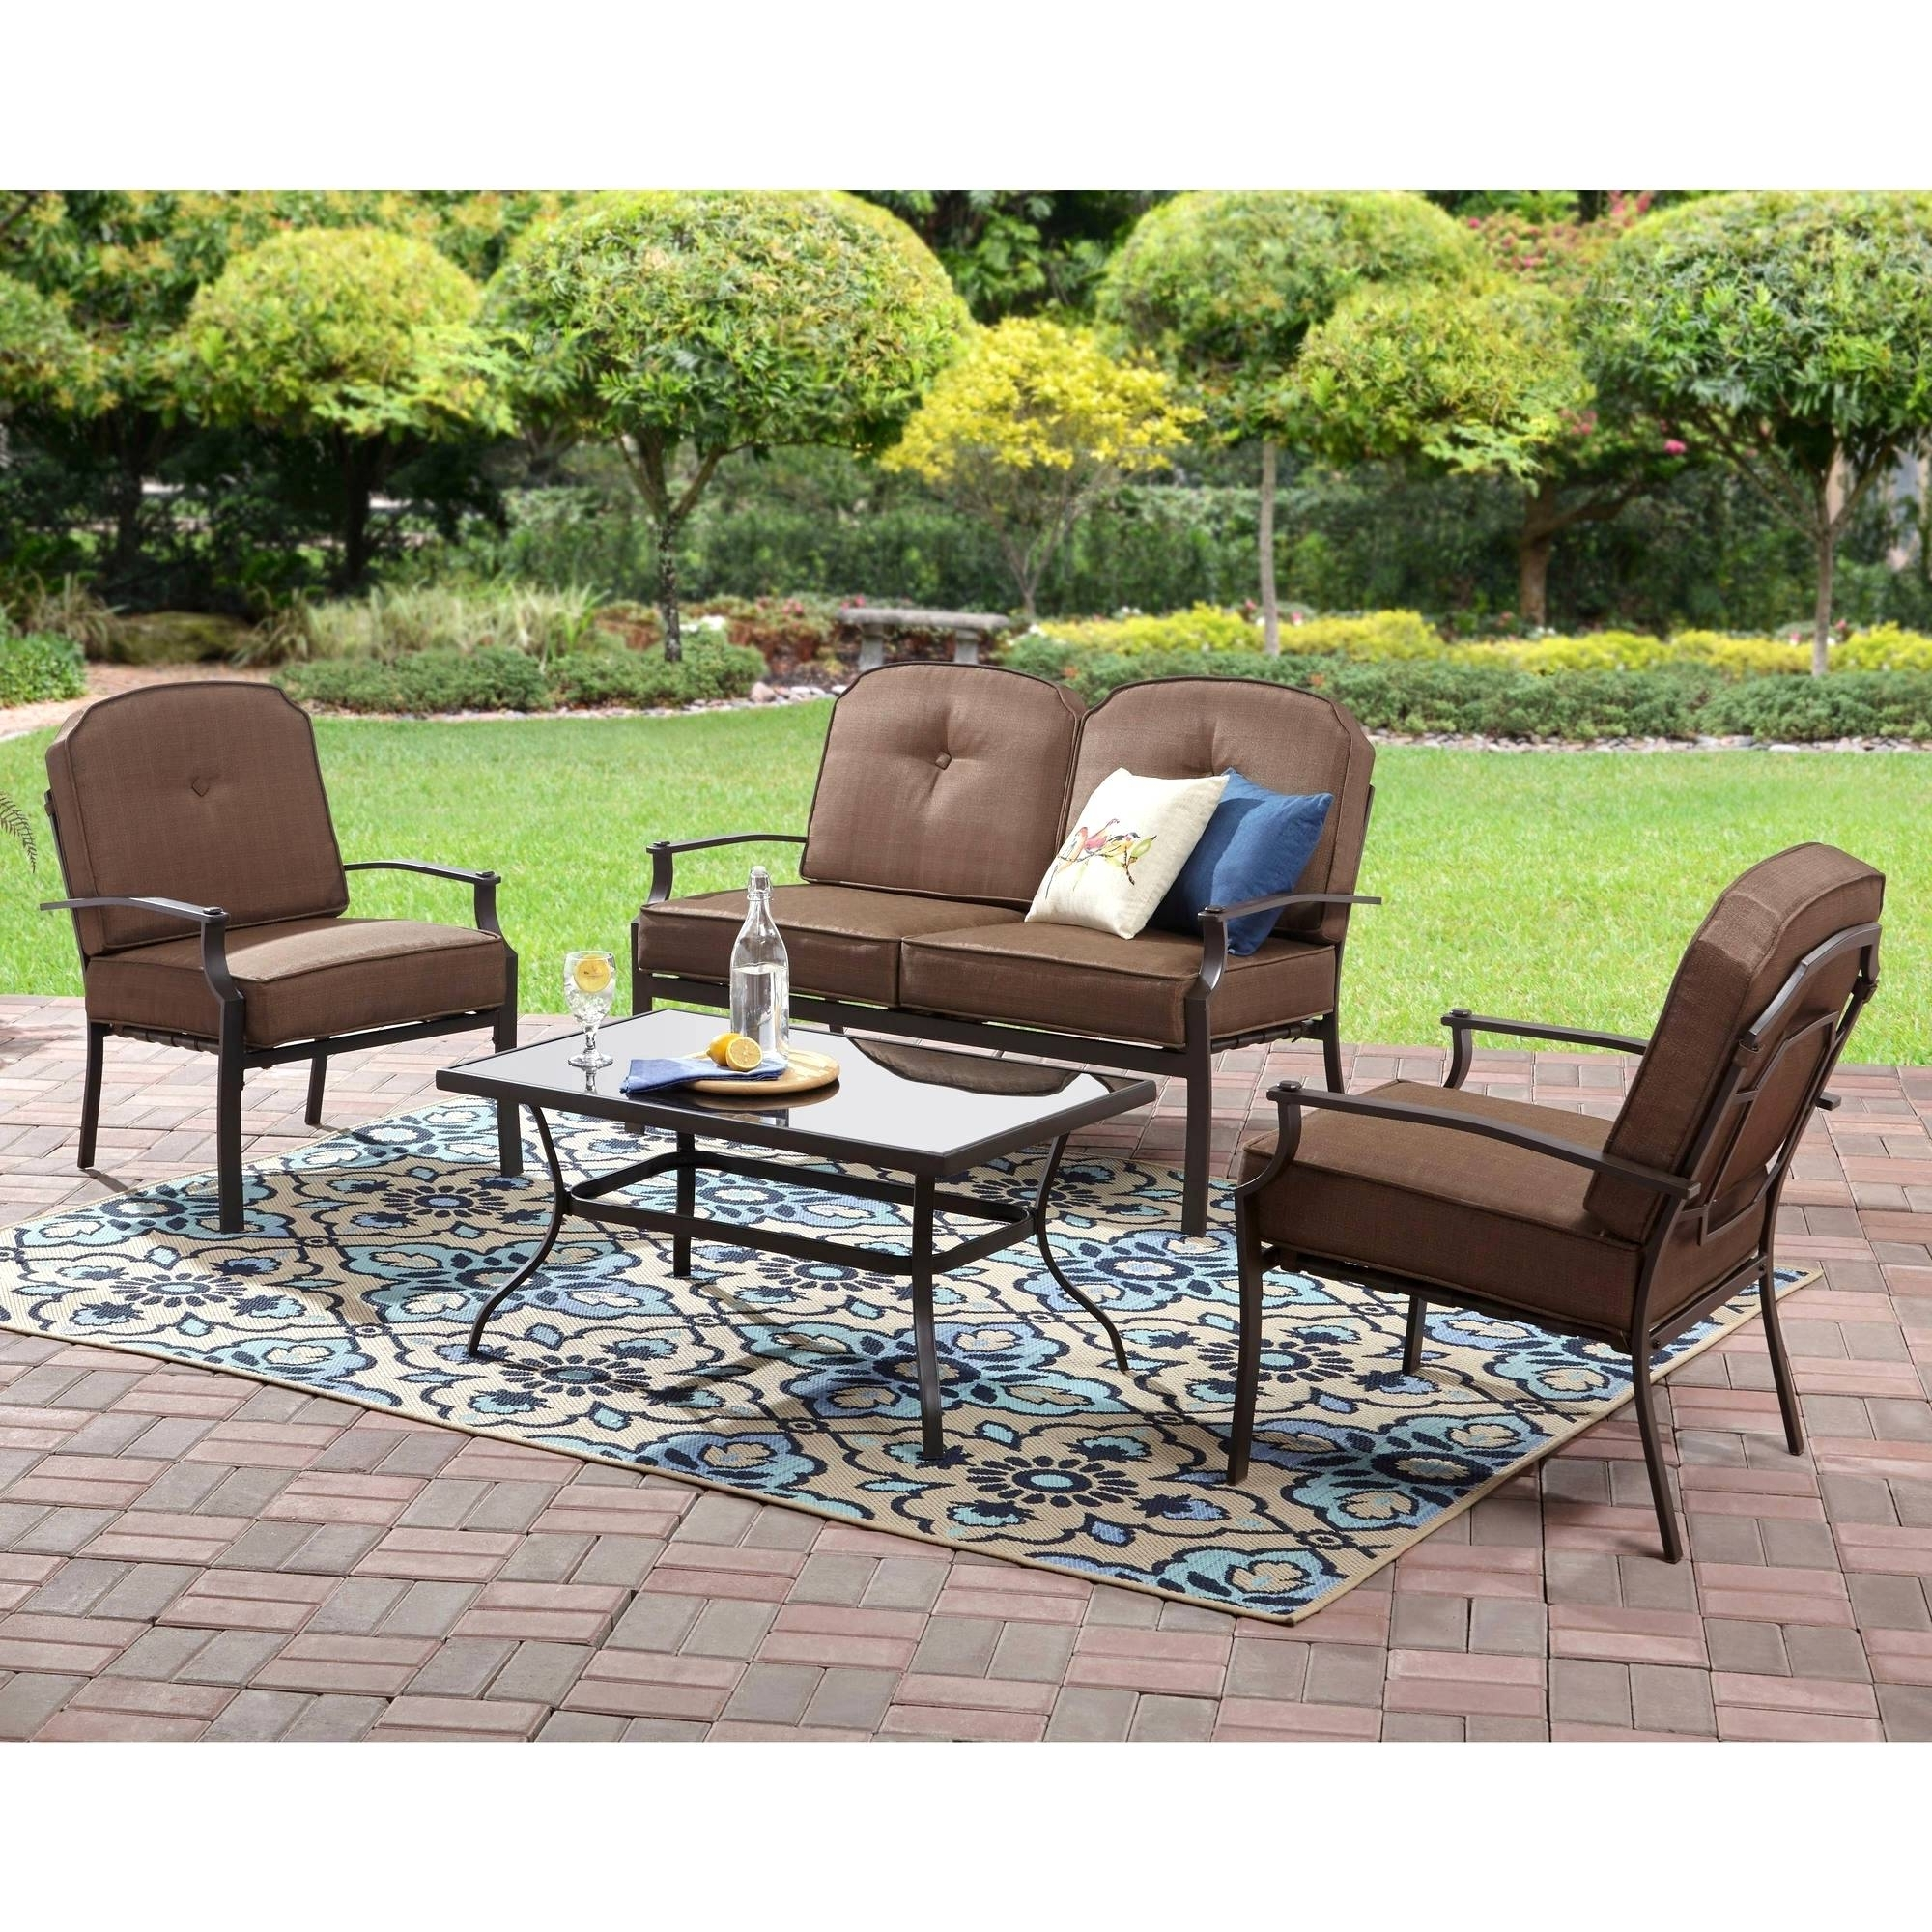 2019 Inexpensive Patio Conversation Sets Inside Outdoor : Outdoor Patio Clearance Inexpensive Patio Sets Patio (View 5 of 20)